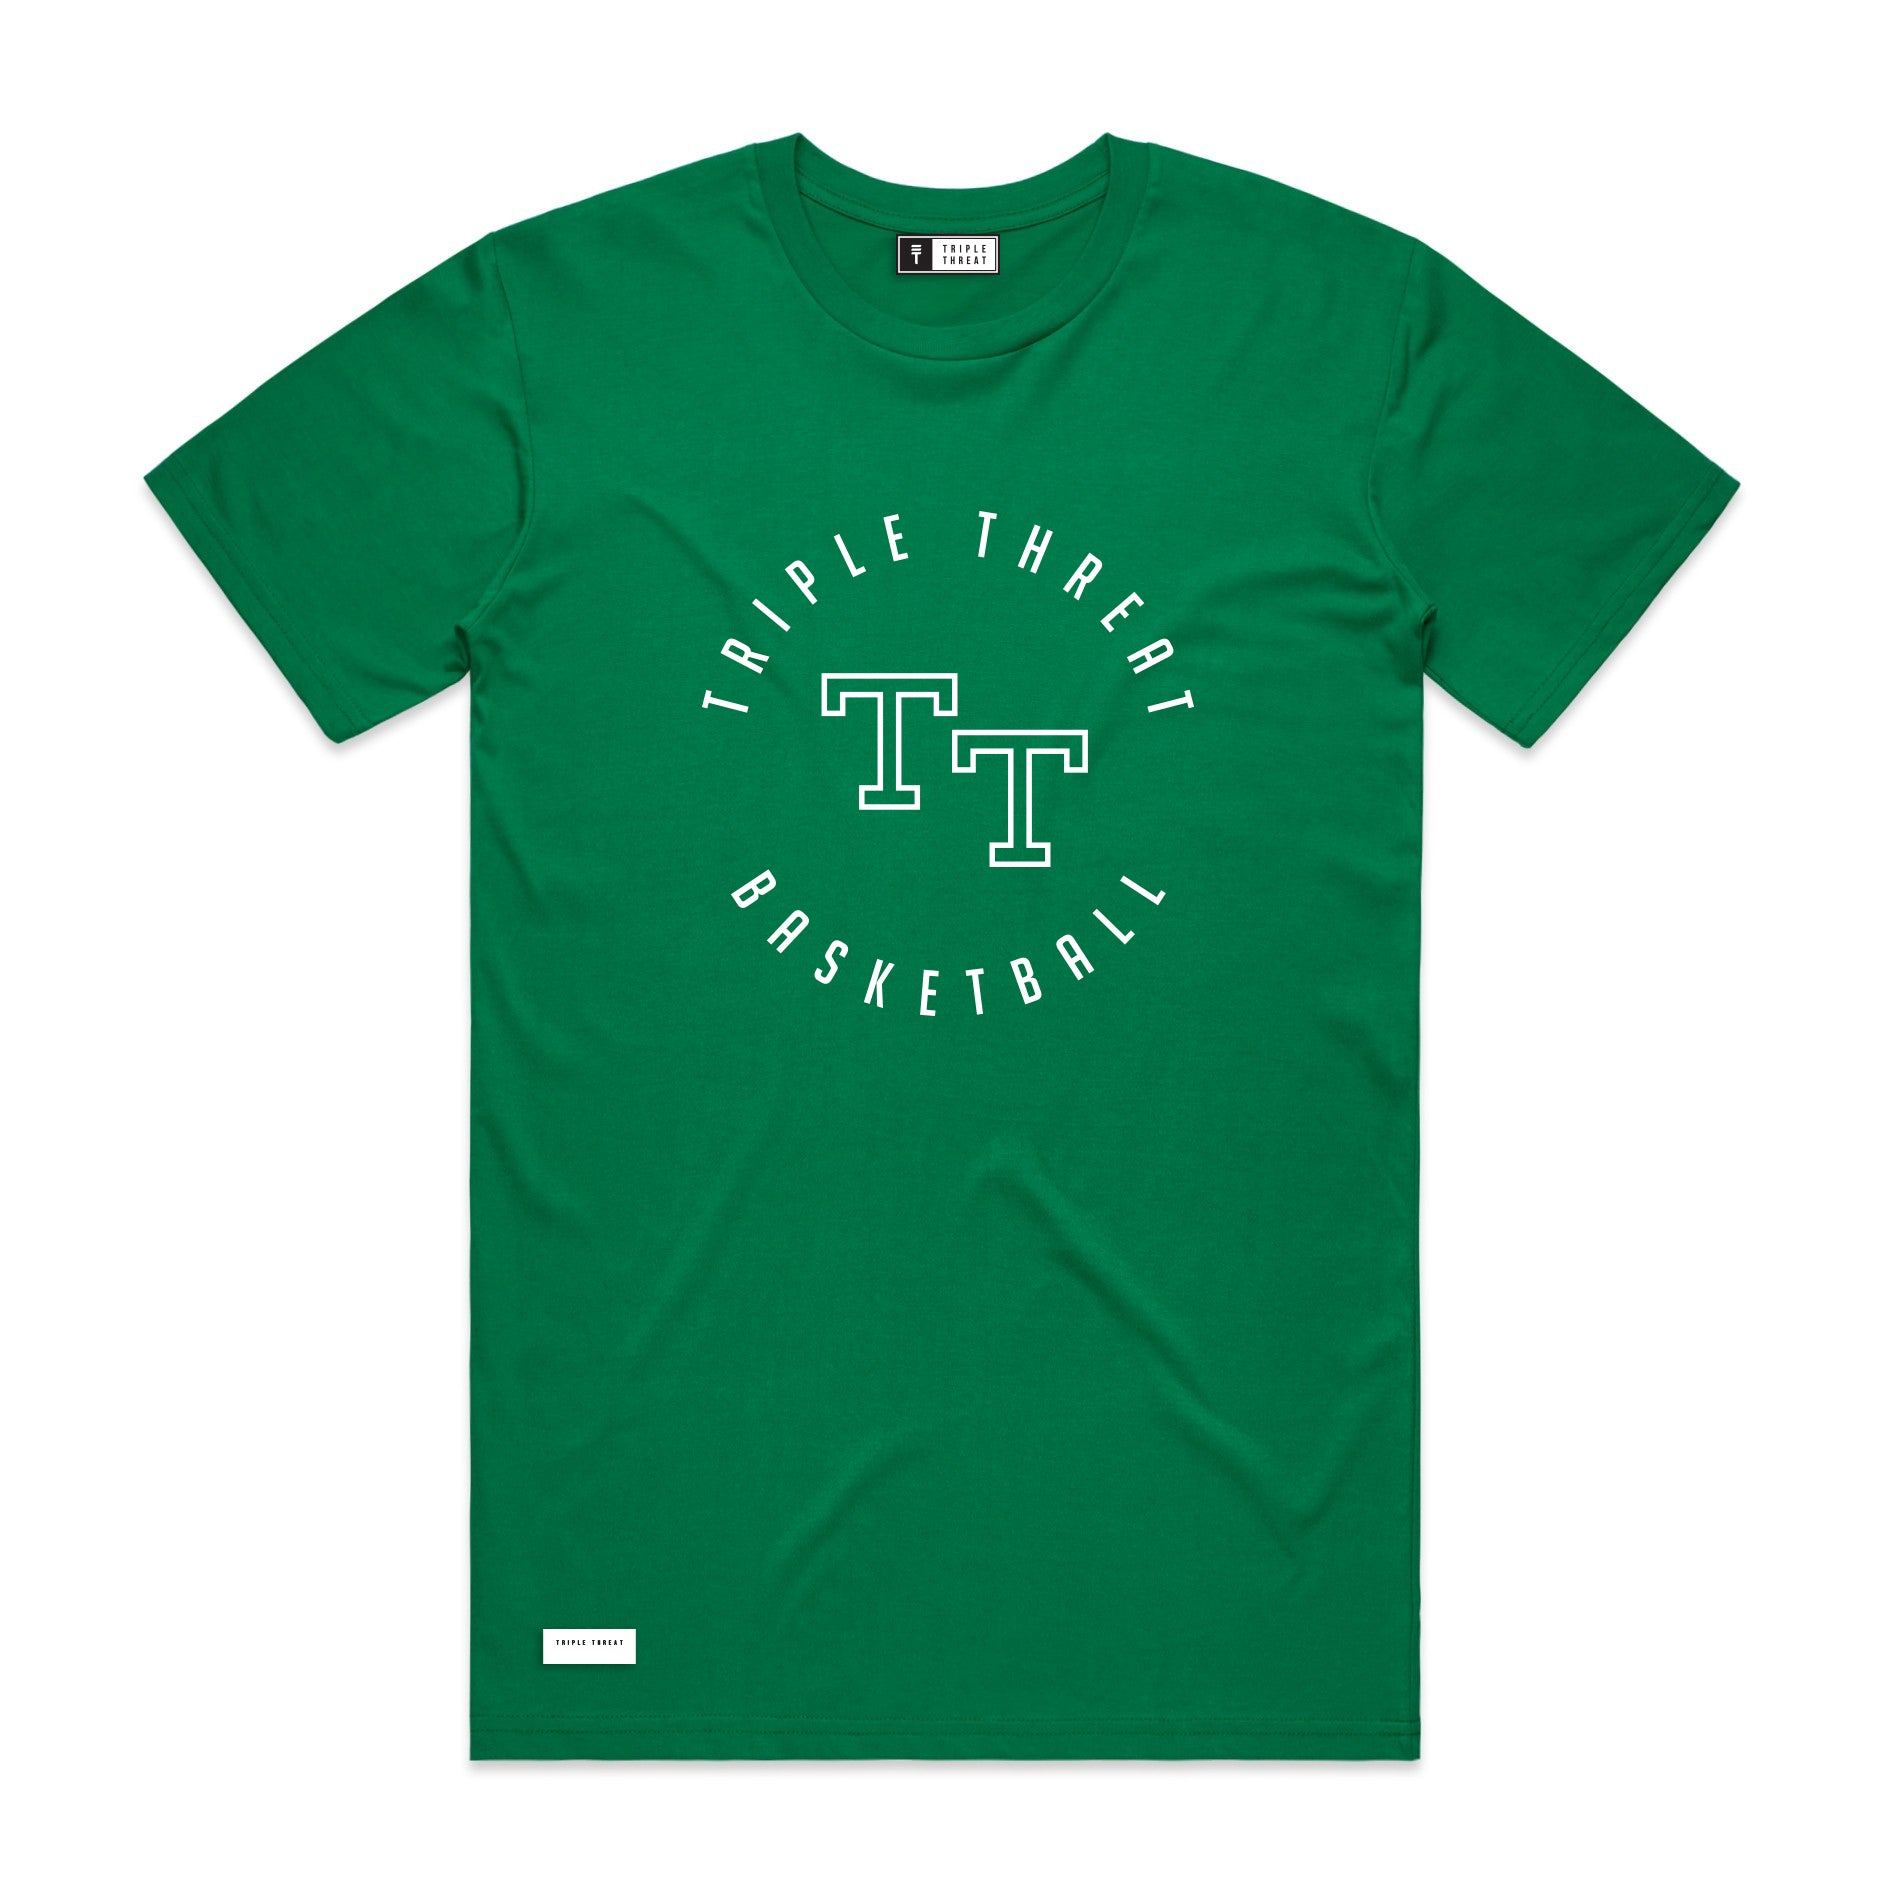 ROUND LOGO T-SHIRT - GREEN